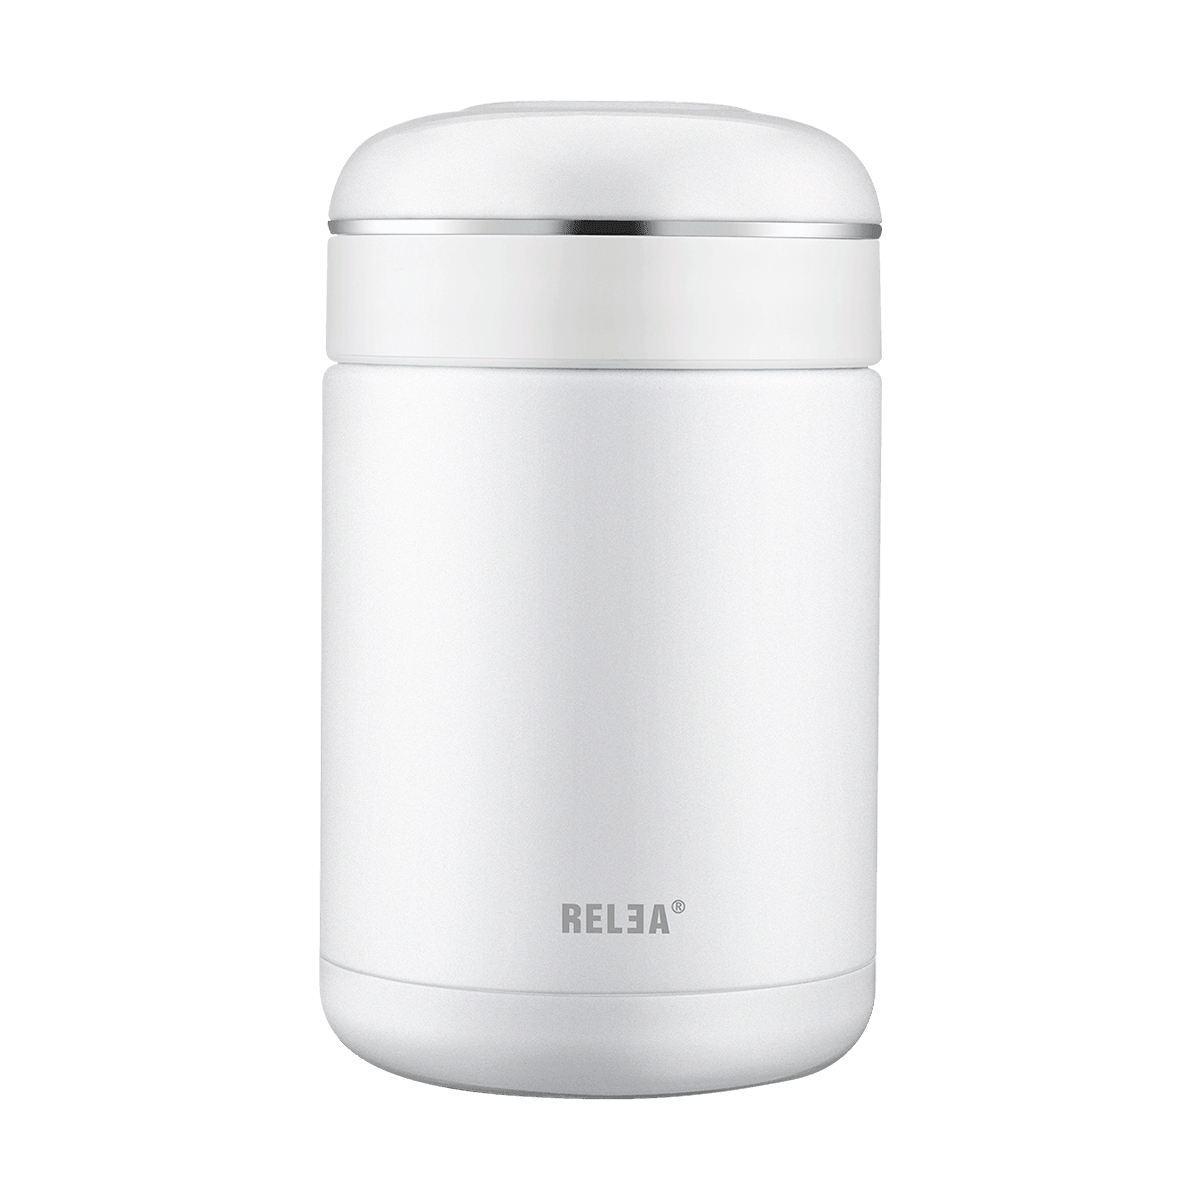 Yamibuy.com:Customer reviews:RELEA Stainless Steel Food Jar Container 540ml Pearl White